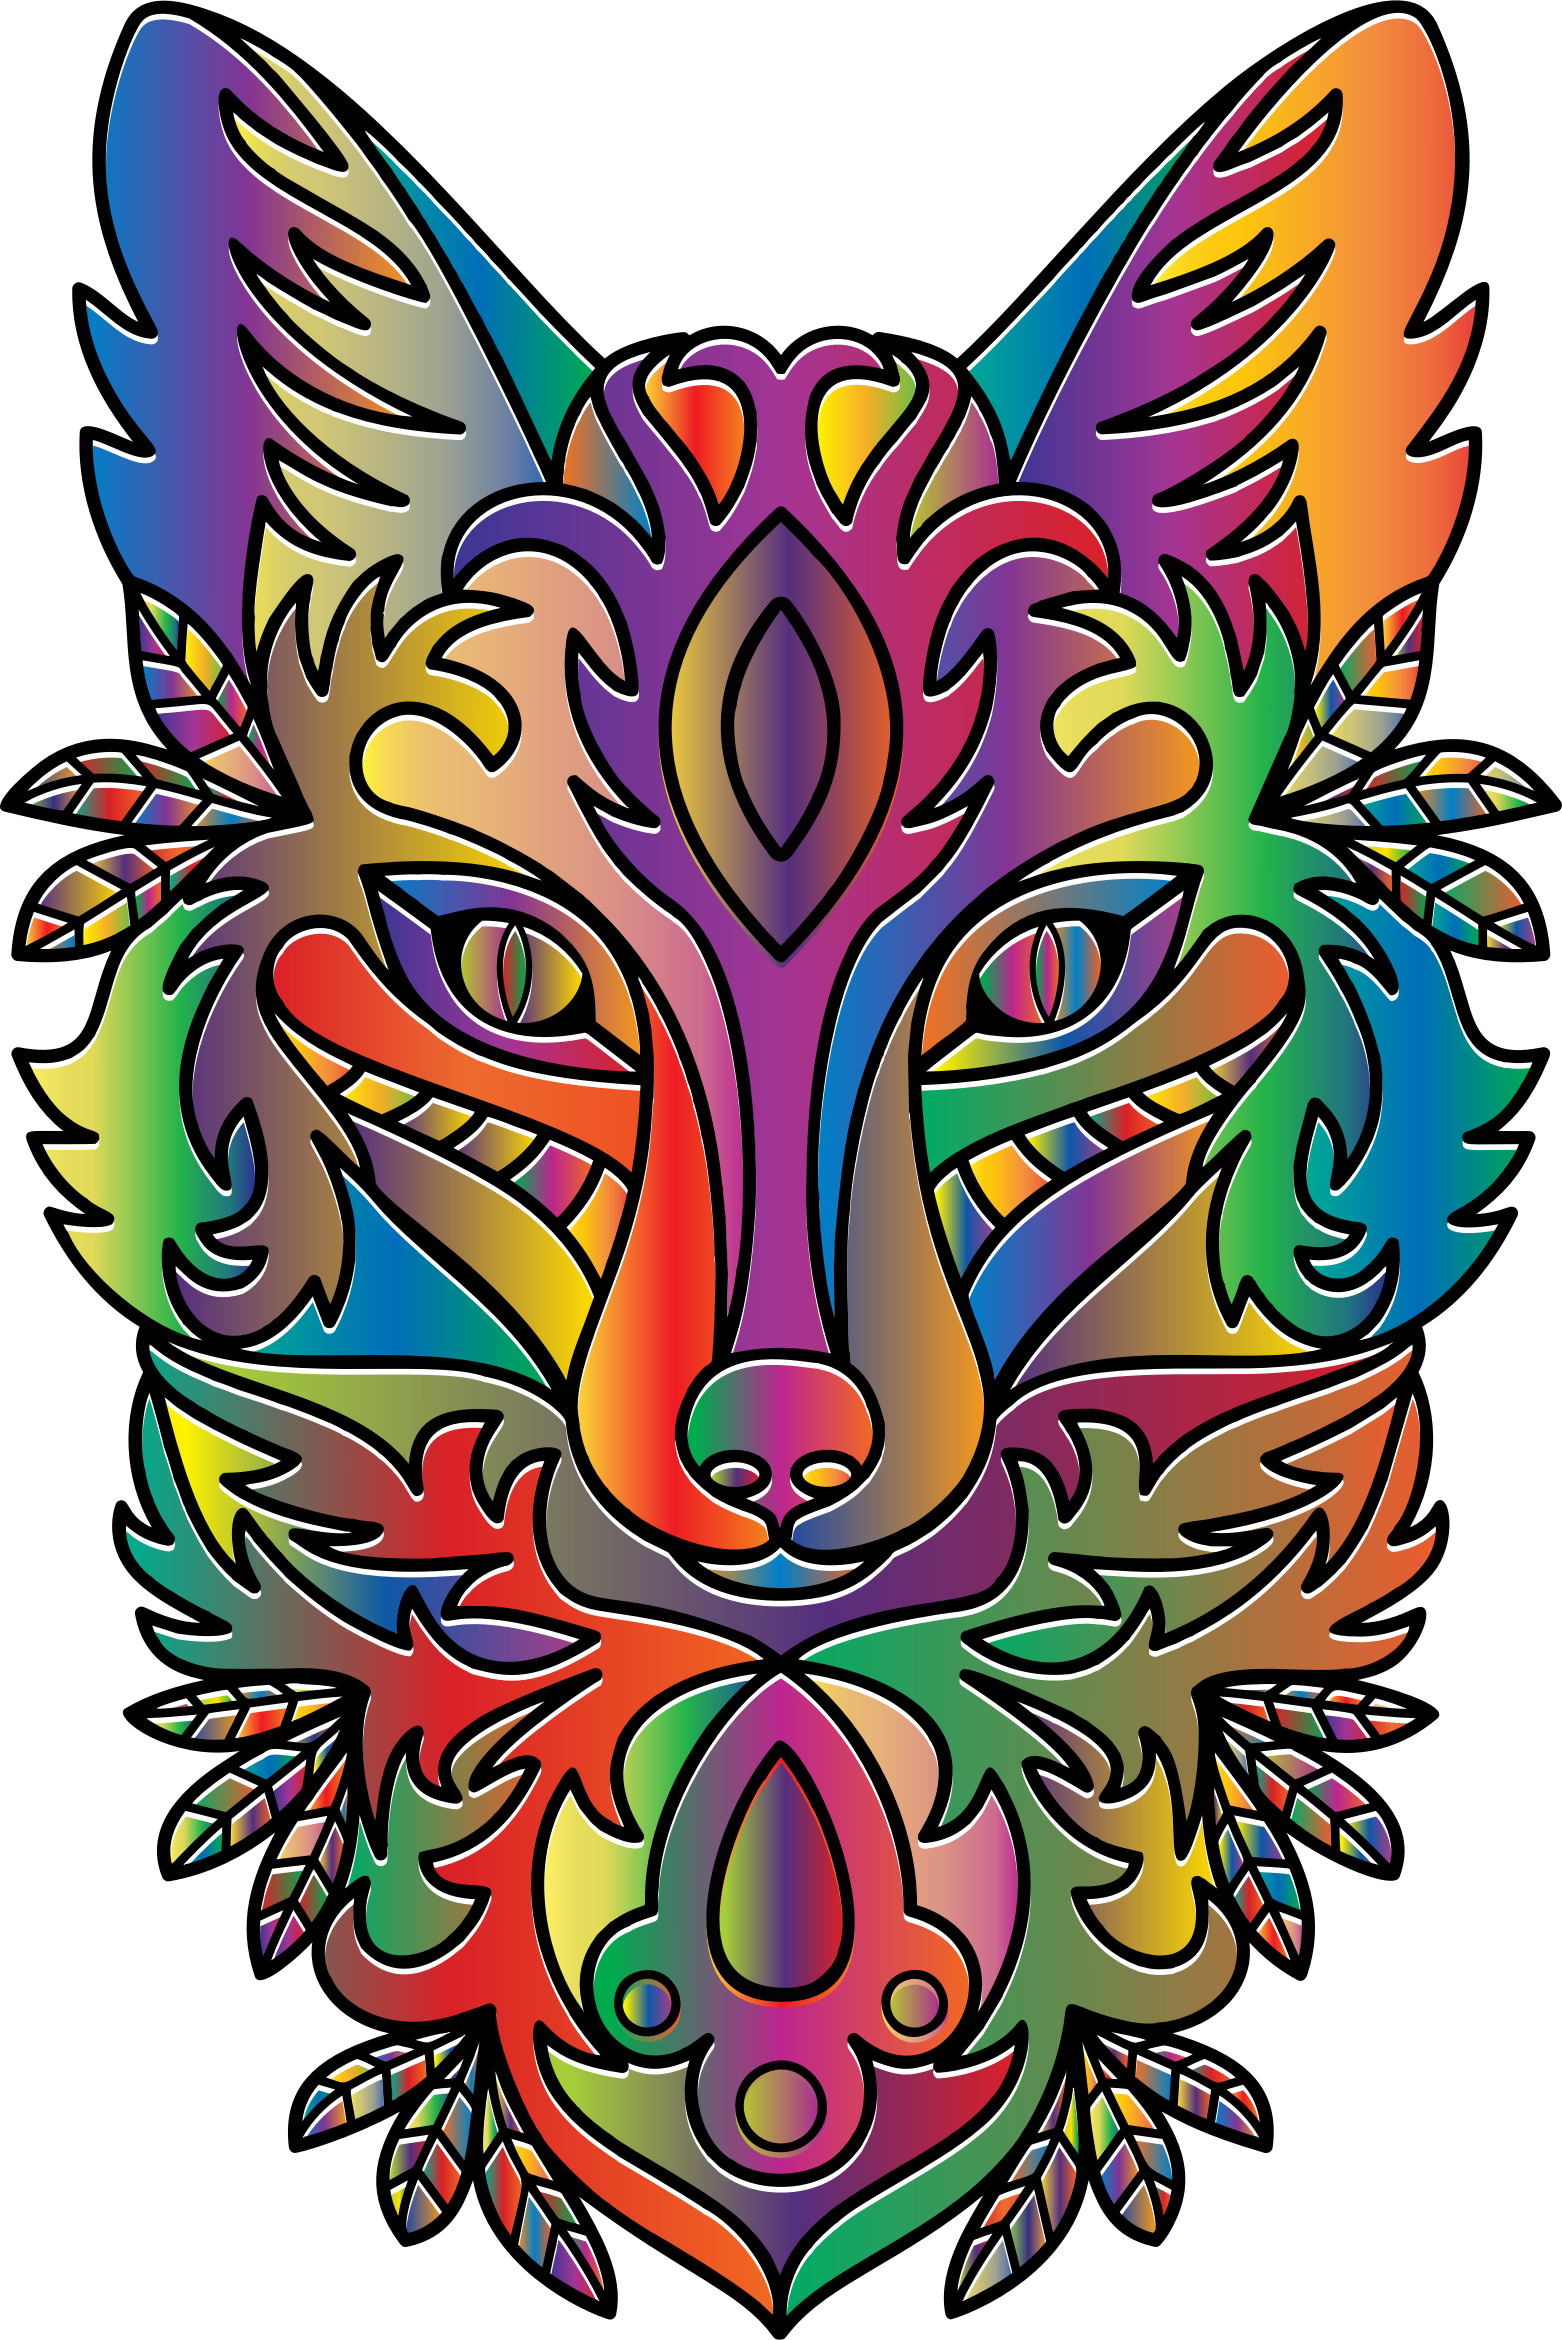 Prismatic Ornamental Fox Line Art by GDJ